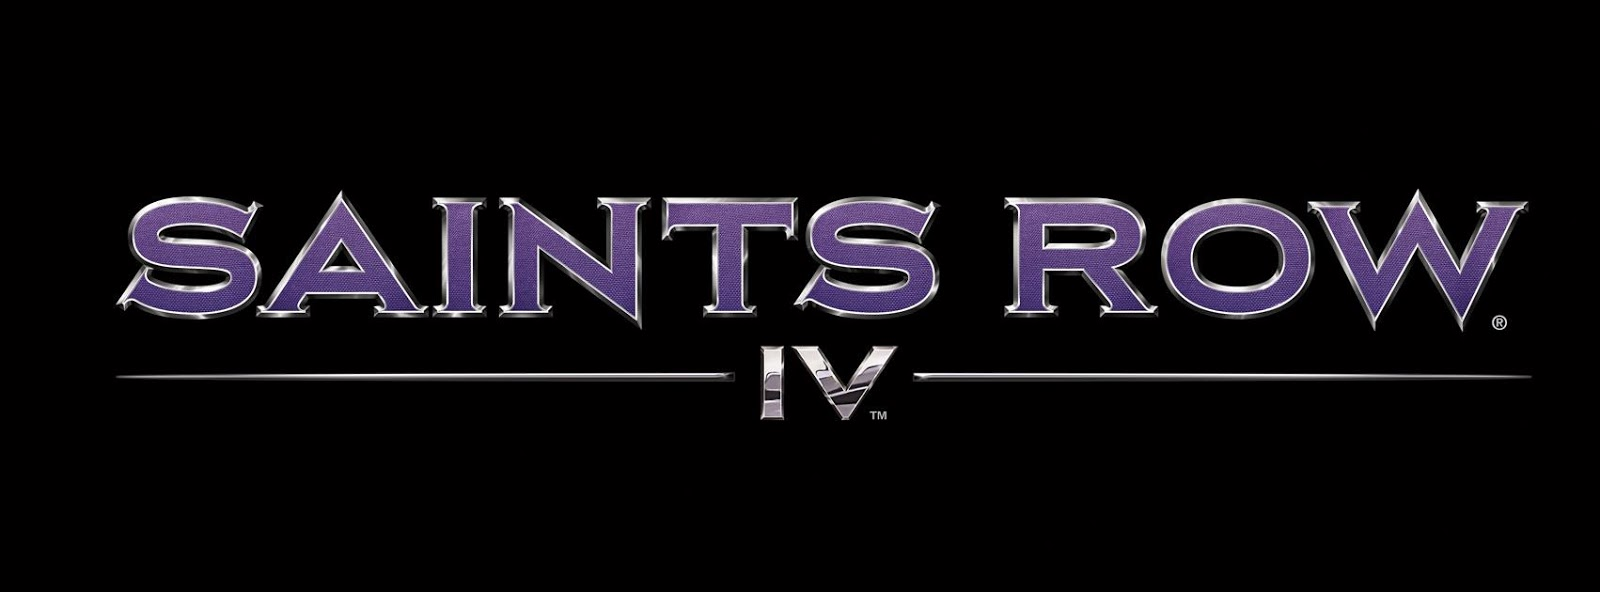 Saints Row IV Review - weknowgamers